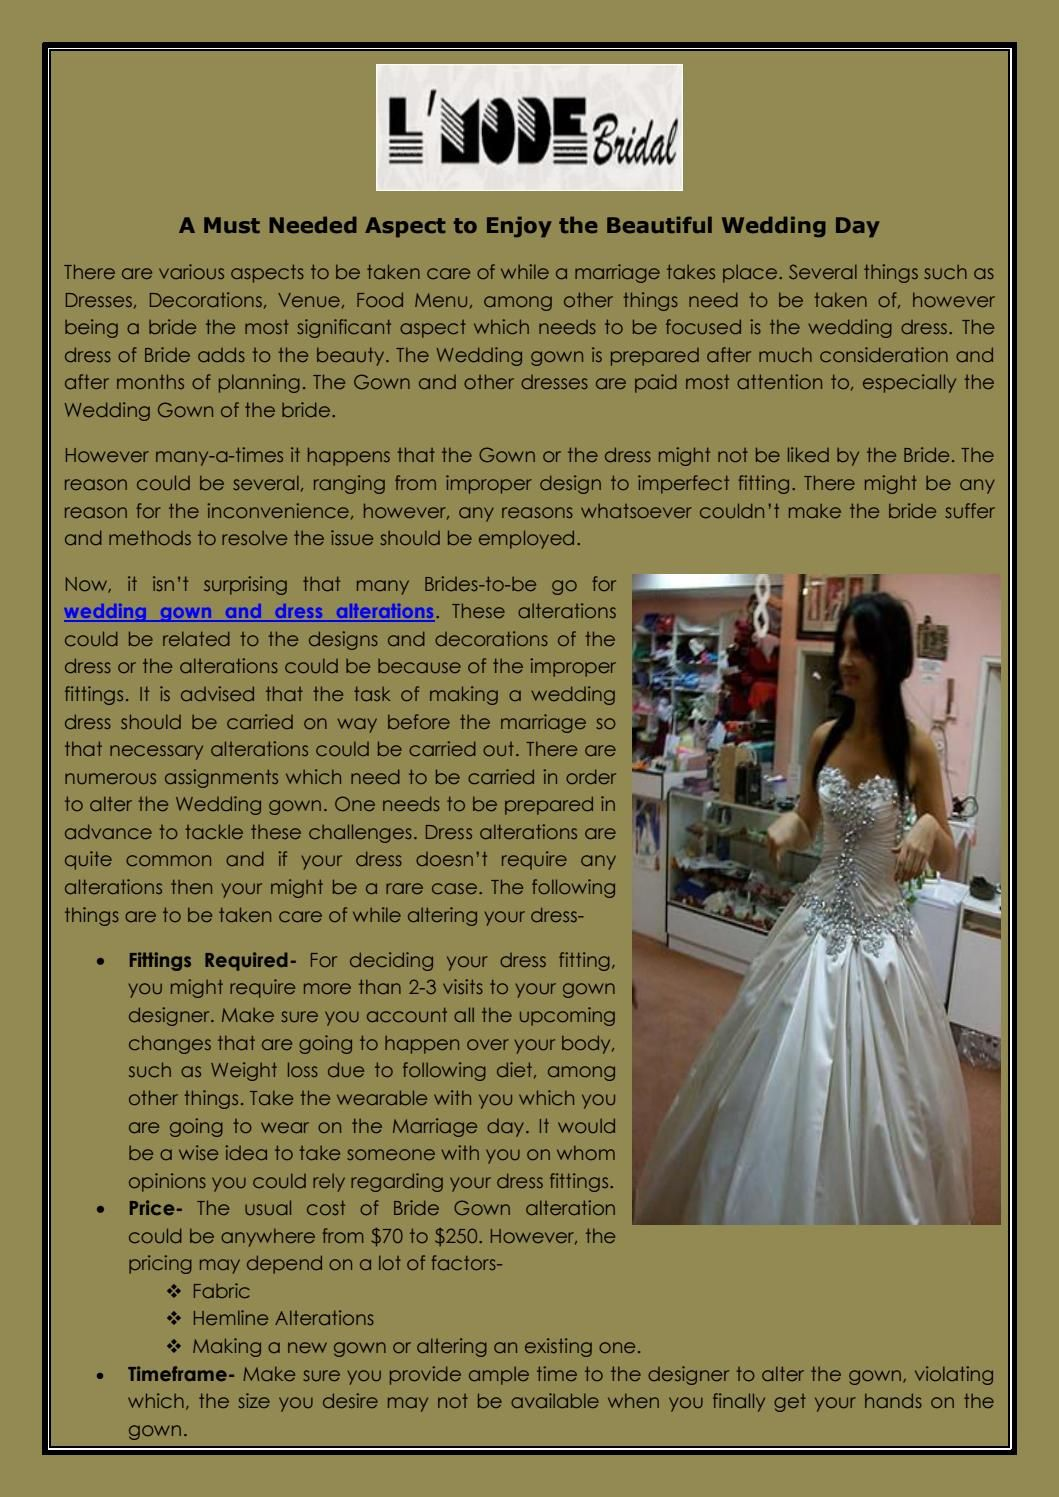 After wedding dress ideas  A Must Needed Aspect to Enjoy the Beautiful Wedding Day  Consideration